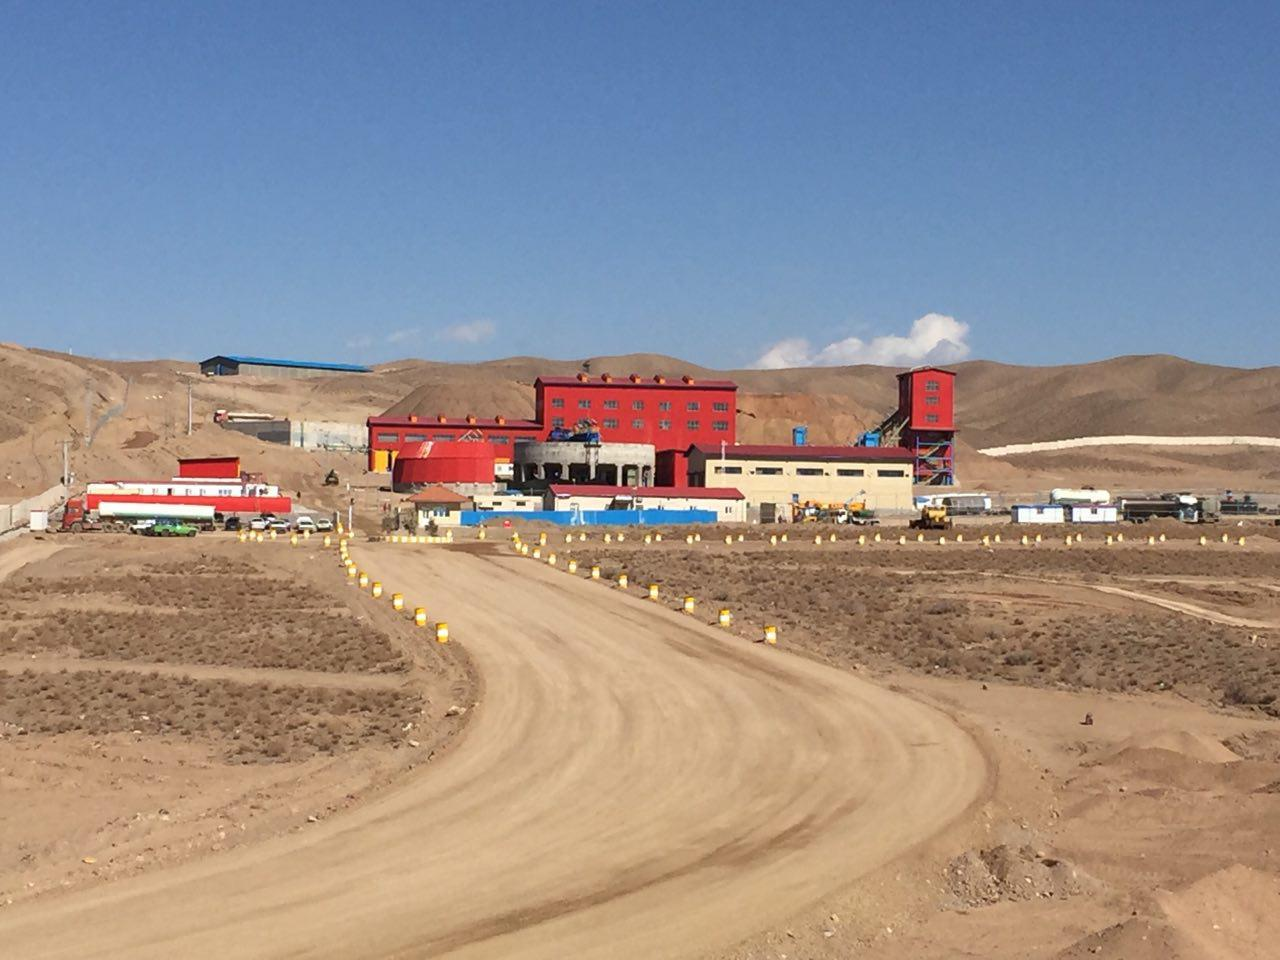 The first hematite iron ore processing plant with a private partnership with IMIDRO